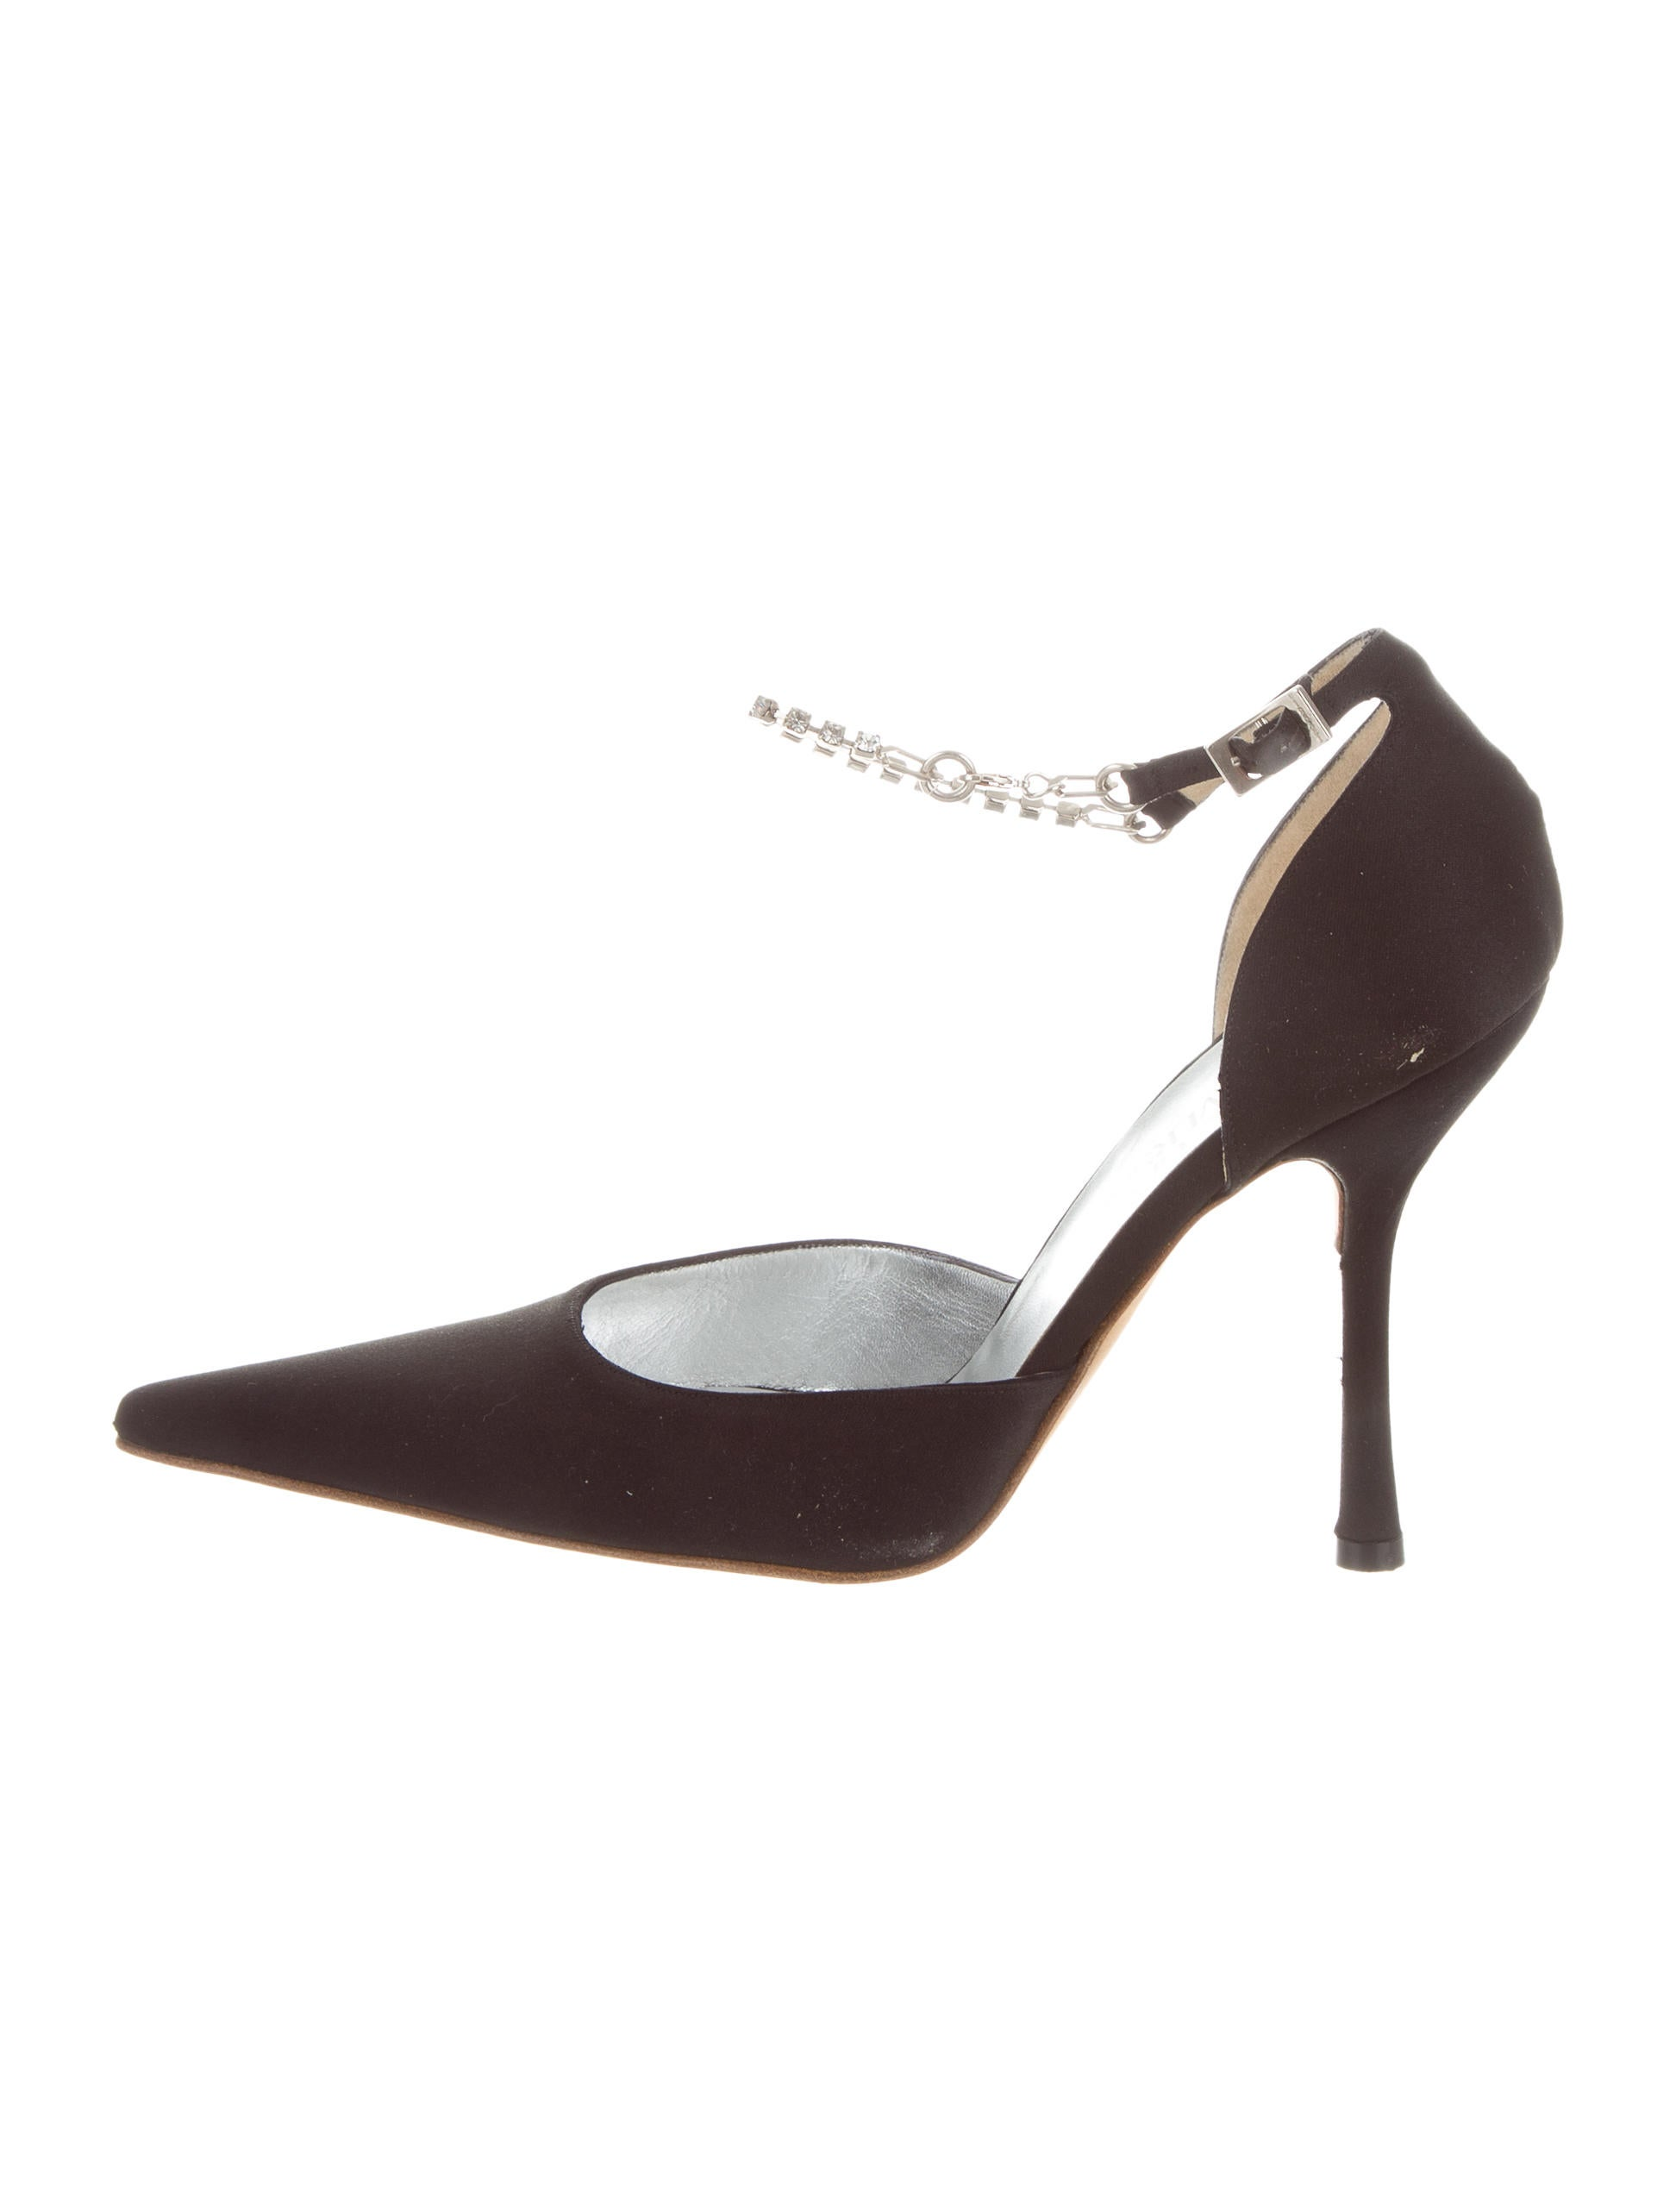 Gianni Versace Satin Pointed-Toe Pumps factory outlet online buy cheap deals clearance low price from china online free shipping marketable 1gzVO